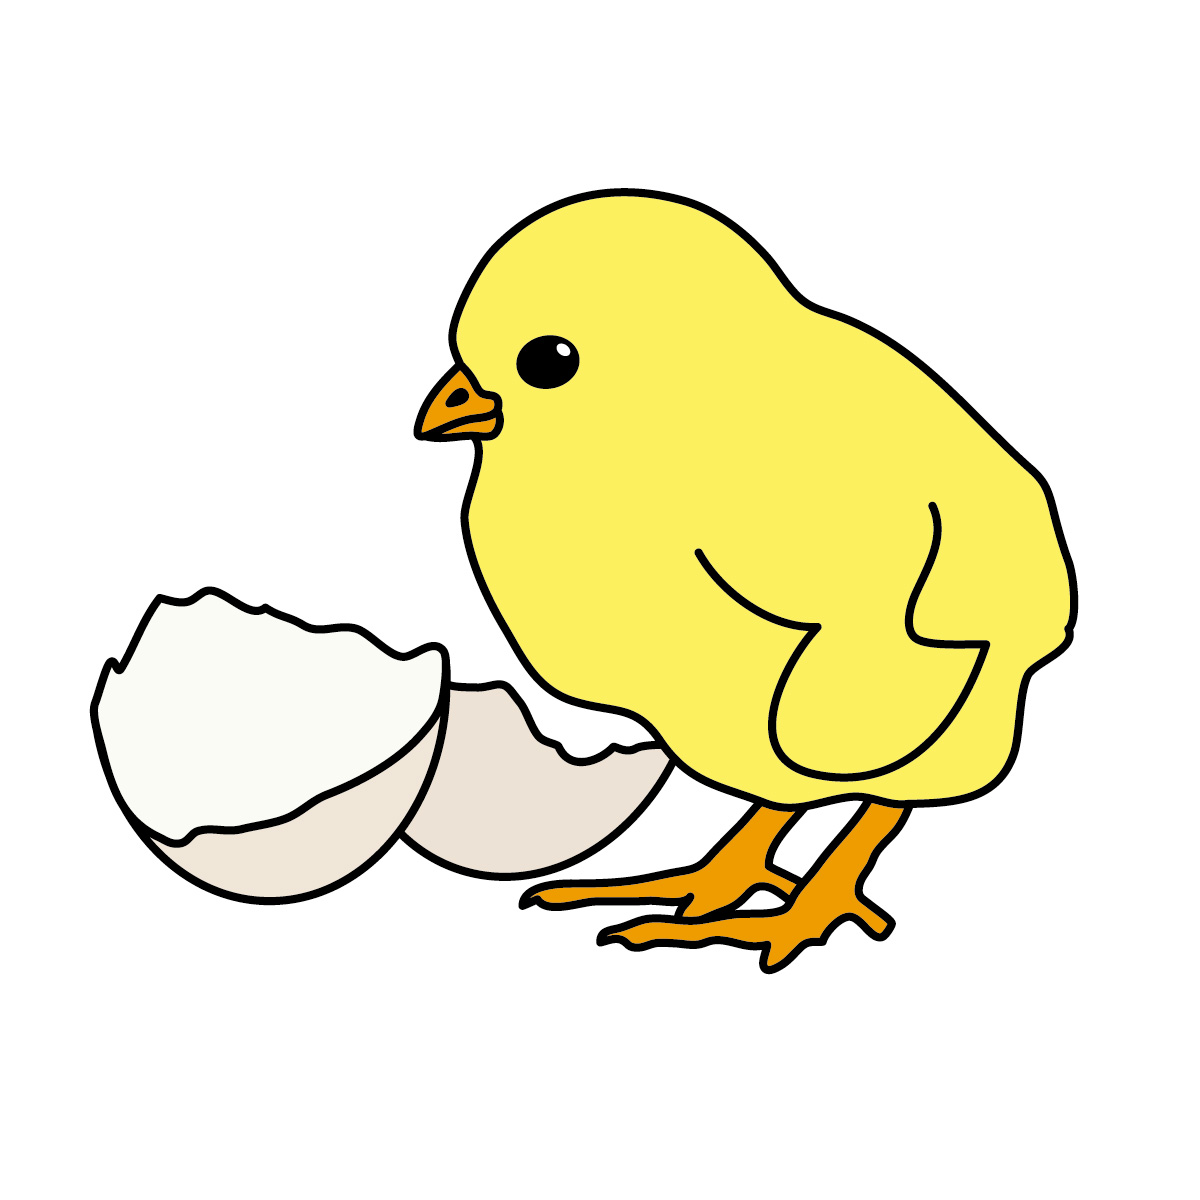 Chic Chick Clipart at Dynamic pickaxe 2019.